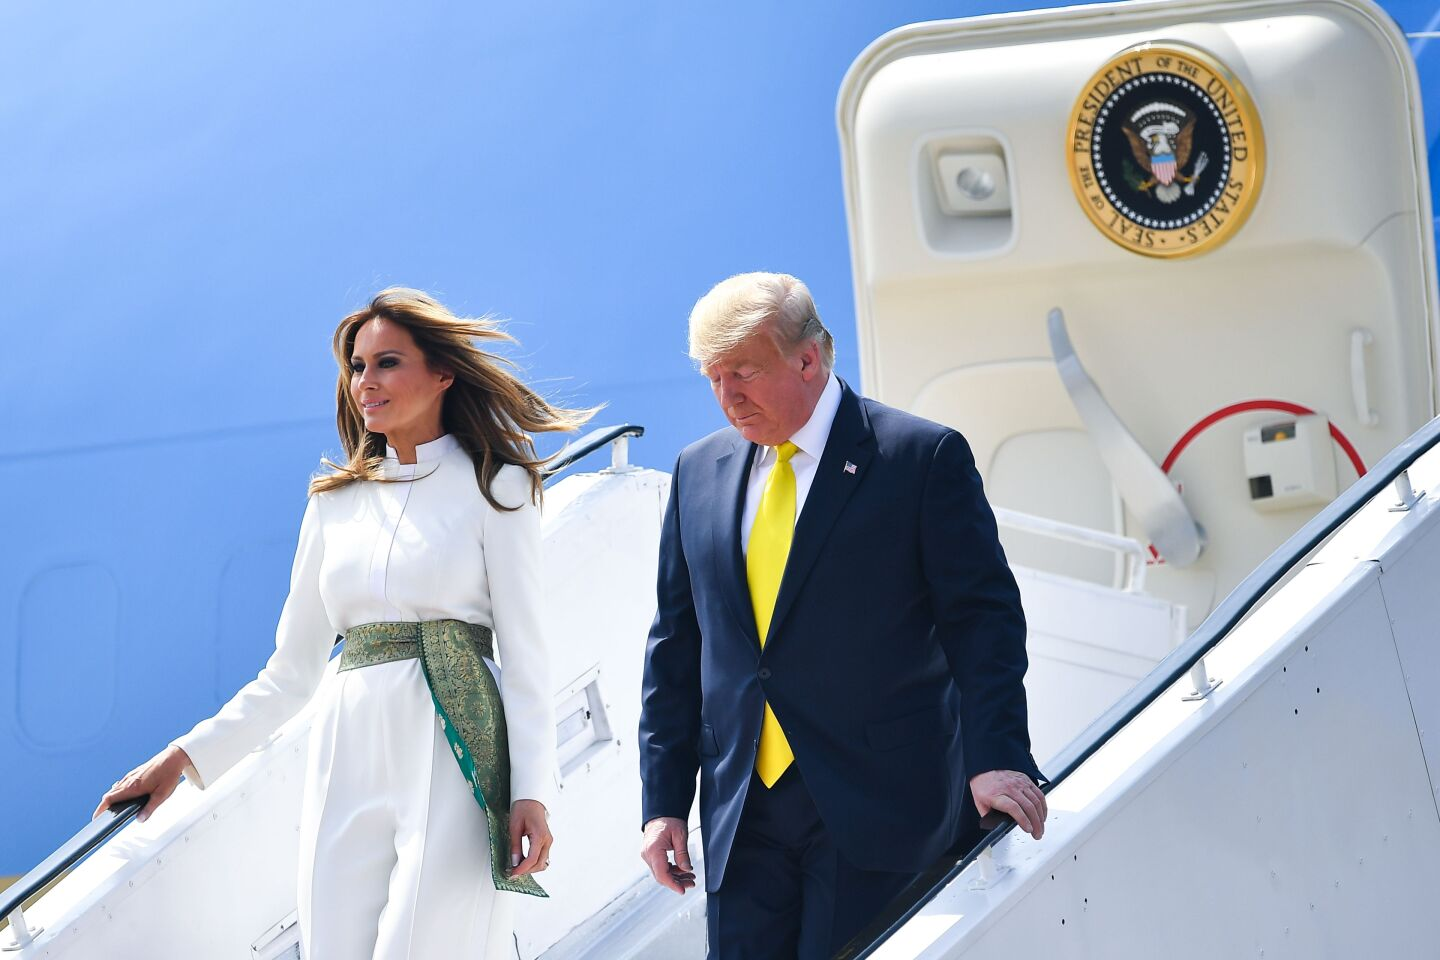 US President Donald Trump and First Lady Melania Trump disembark from Air Force One at Sardar Vallabhbhai Patel International Airport in Ahmedabad on February 24, 2020. (Photo by MANDEL NGAN / AFP) (Photo by MANDEL NGAN/AFP via Getty Images)